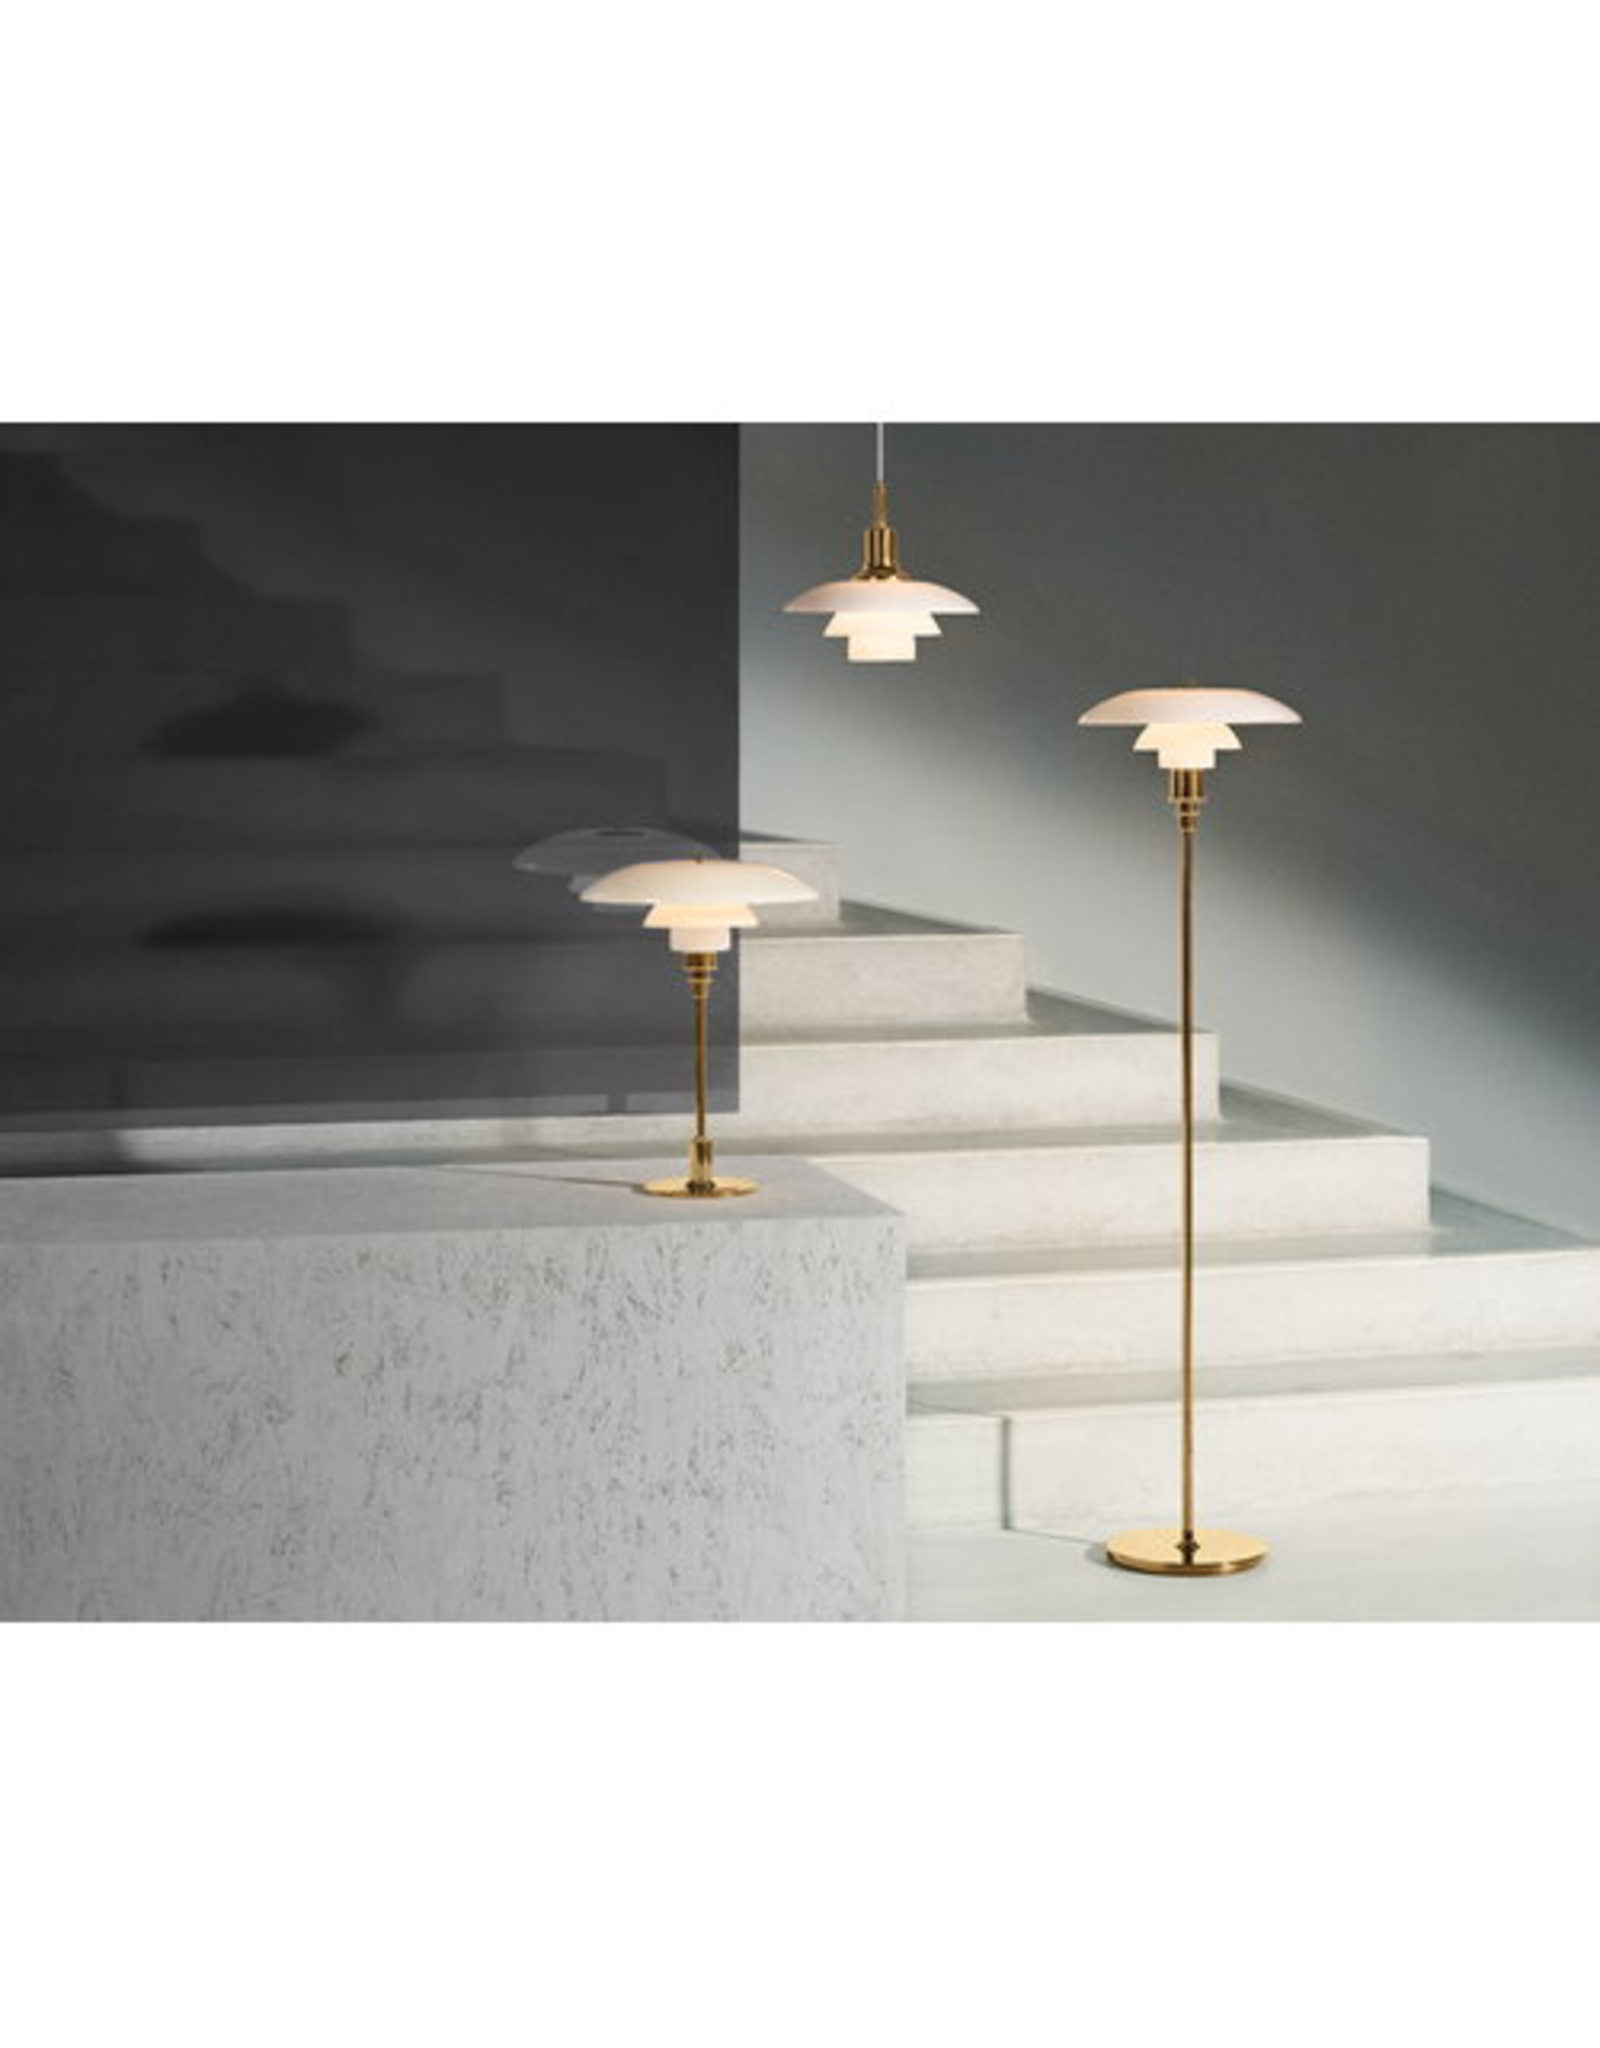 LOUIS POULSEN PH 3 1/2-2 1/2 FLOOR LAMP, MOUTH BLOWN WHITE OPAL GLASS WITH BRASS FINISH